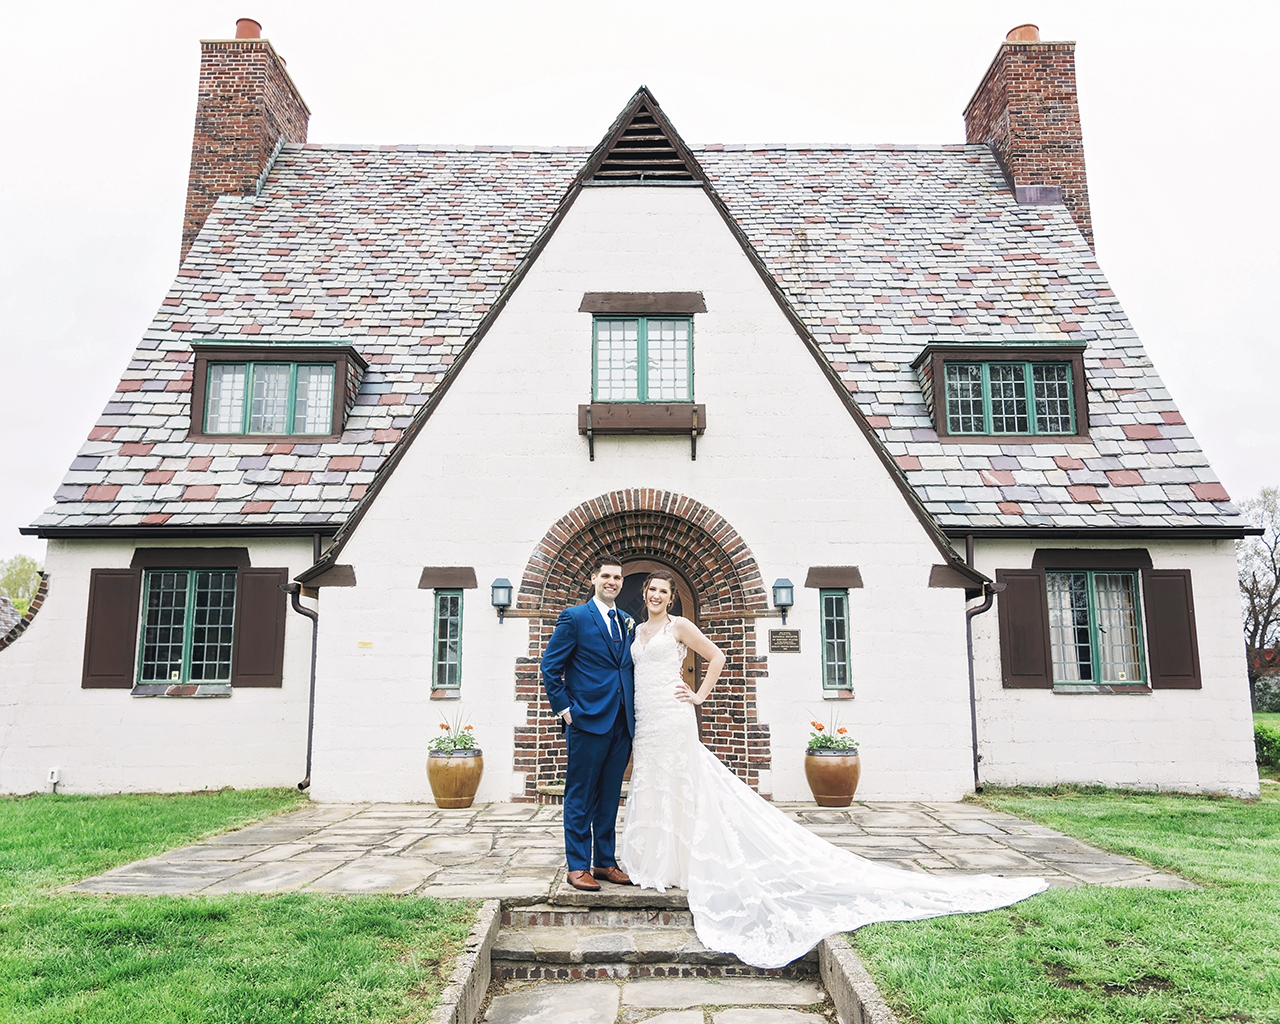 Packard Proving Grounds Wedding Venue